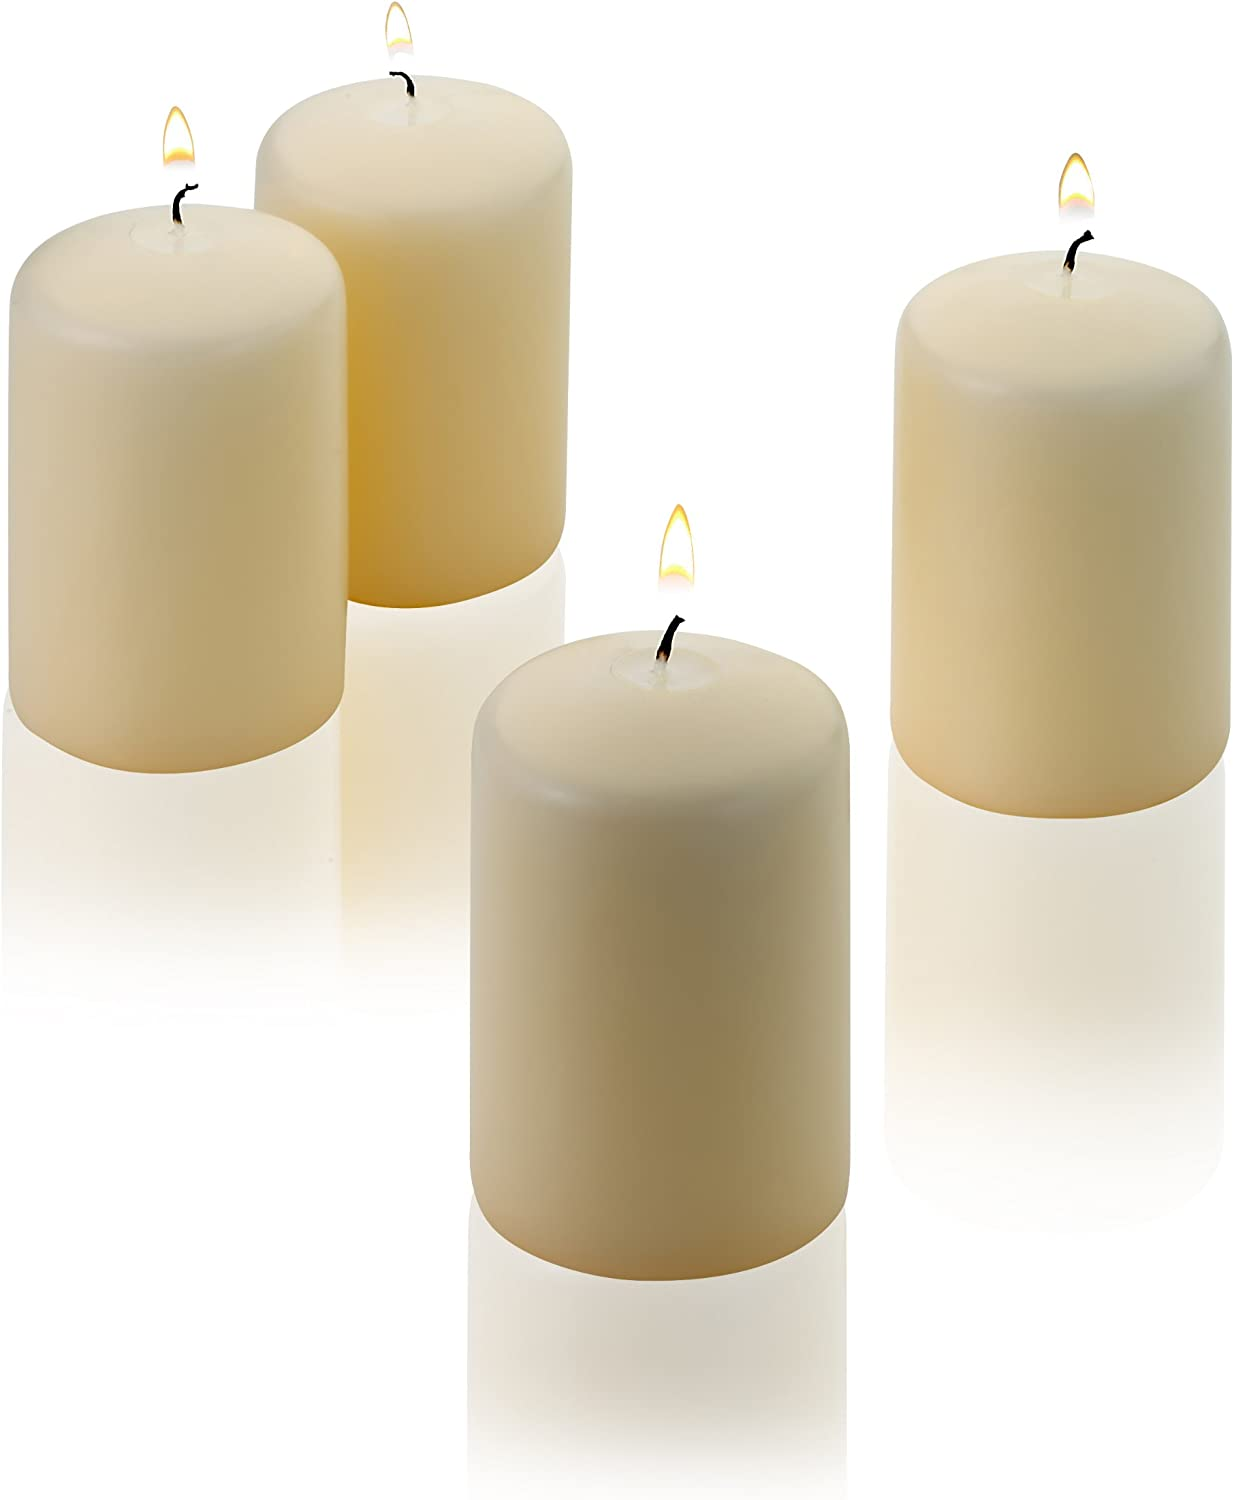 Light In The Dark Vanilla Pillar Candles - Set of 4 Unscented Candles - 3 inch Tall, 2 inch Thick - 18 Hour Clean Burn Time